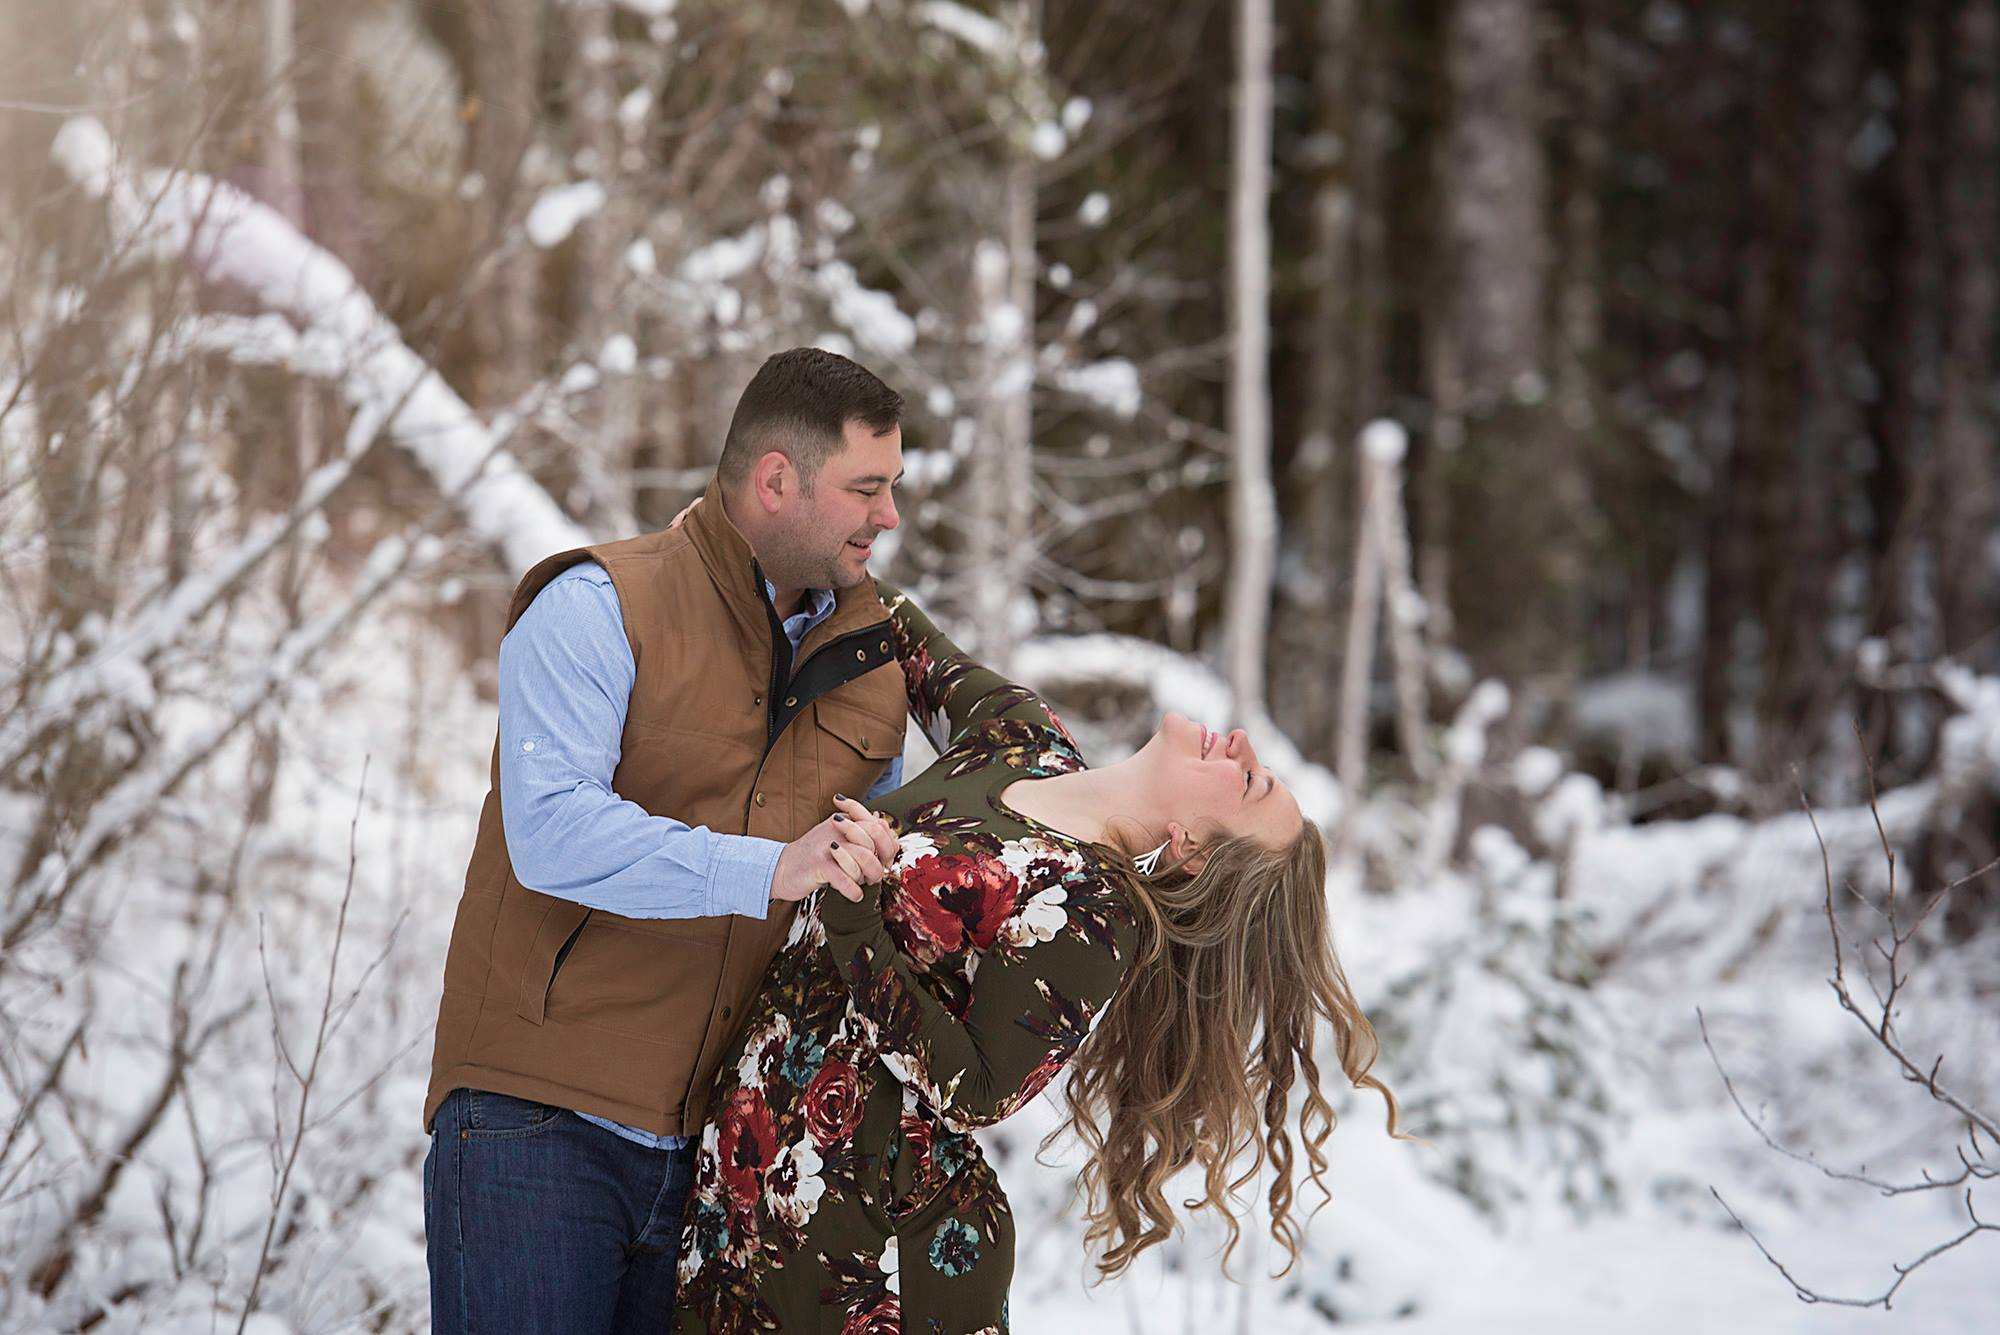 engagement photographer Breanna Mills Photography swayne 3.jpg